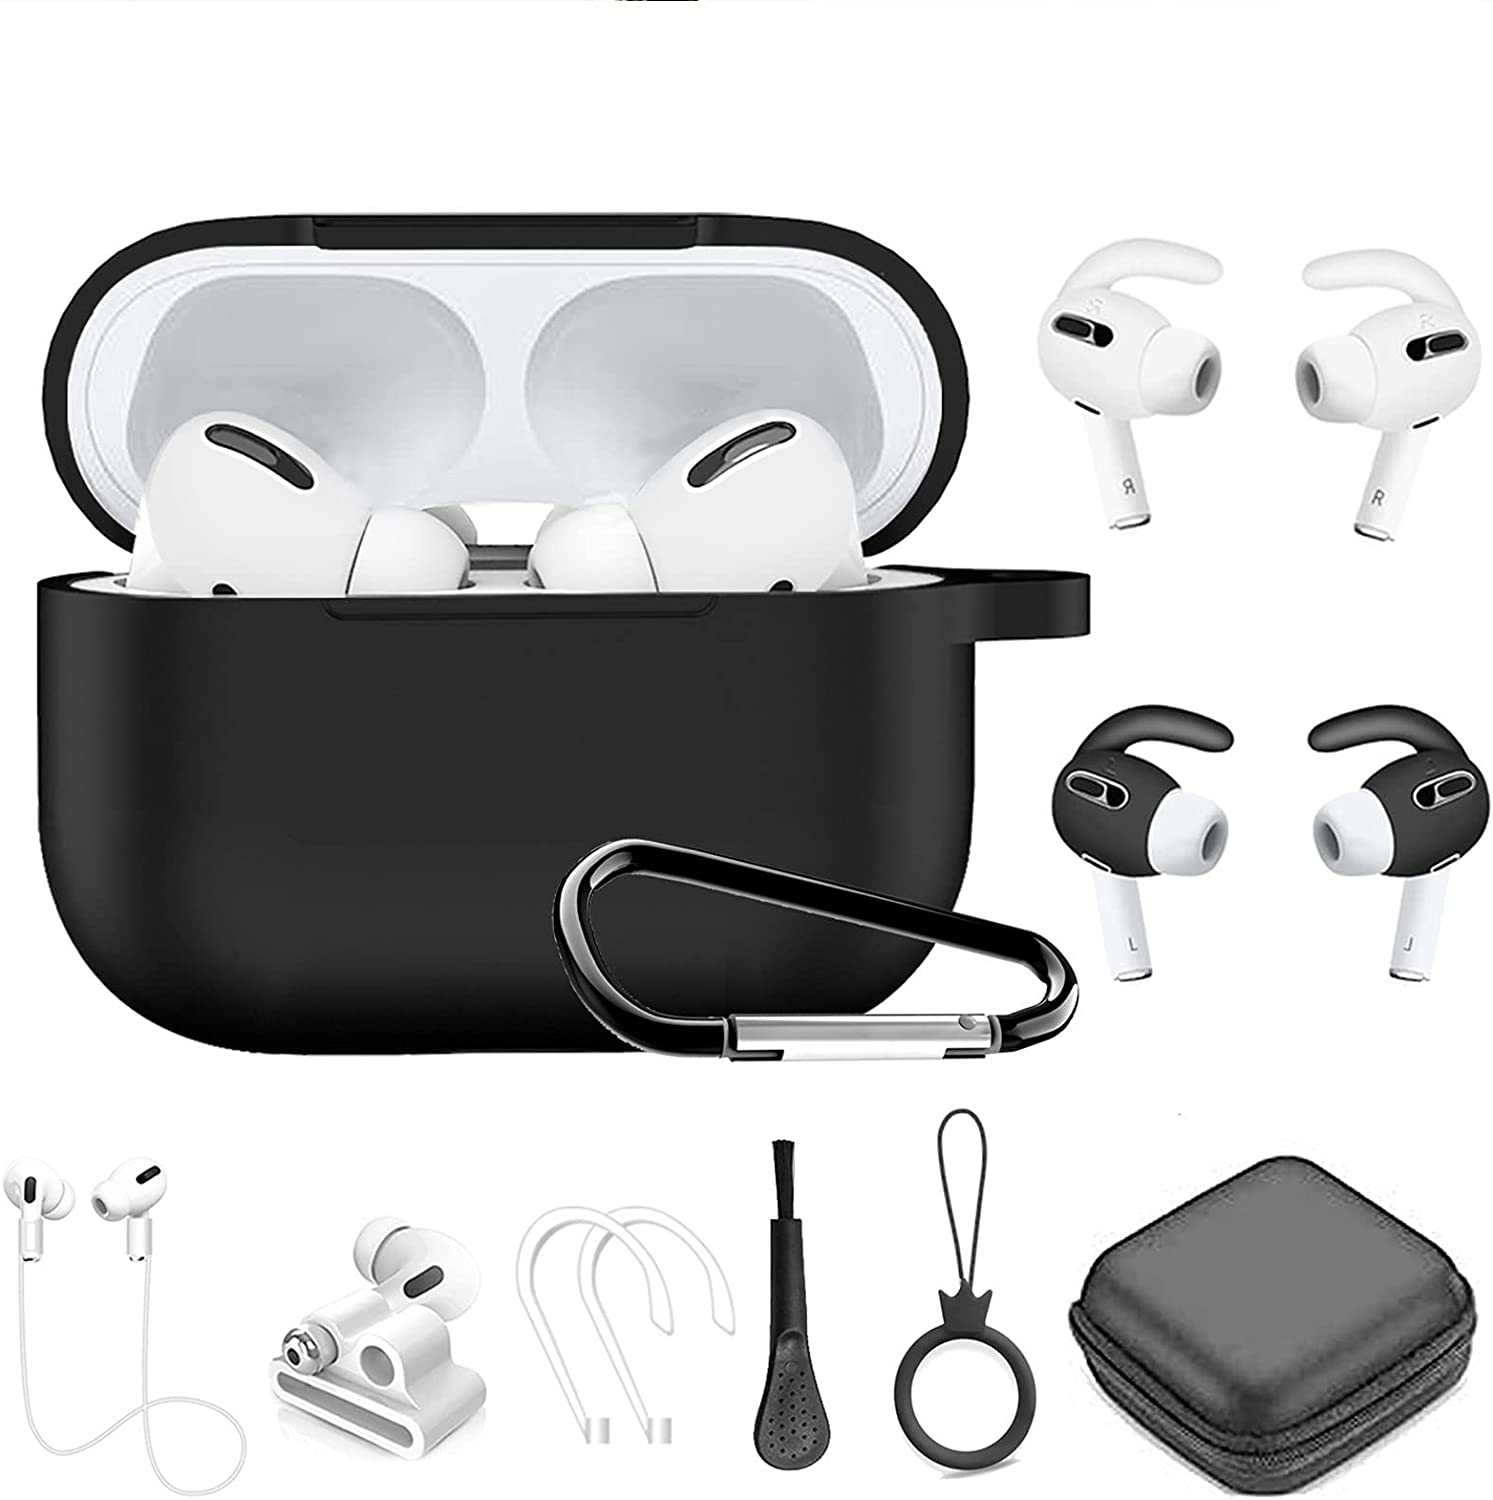 Airpods Pro Case, 11 in 1 Silicone Airpod Pro Accessories kit Set, Apple Airpods 3 Charging Case Cover Skin with Ear Hook/Earbuds Case/Watch Band Holder/Brush/Keychain/Eartips (Black)